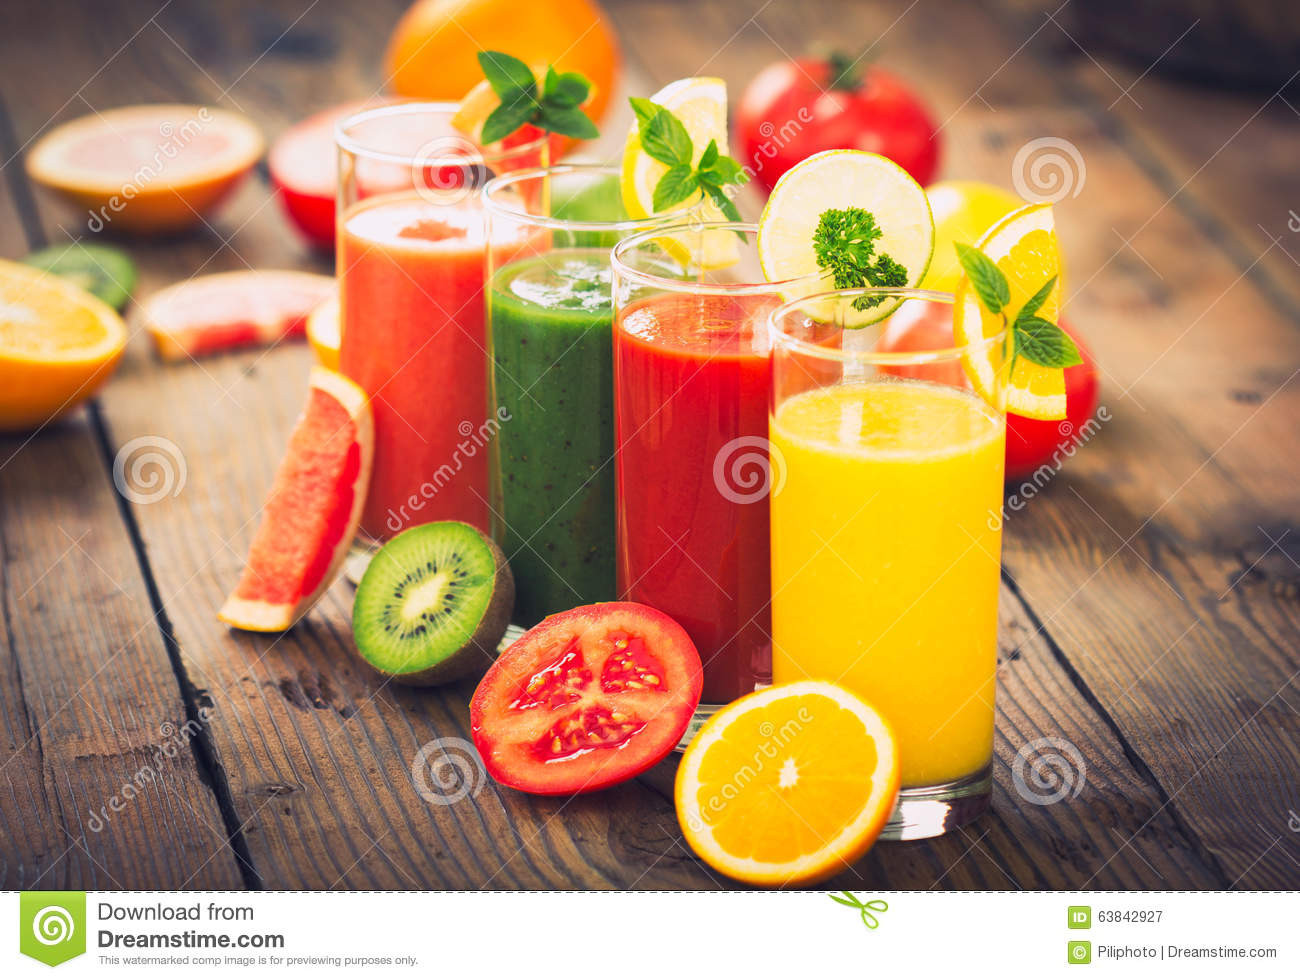 Healthy Fruit And Vegetable Smoothie Recipes  Healthy Fruit And Ve able Smoothies Stock Image